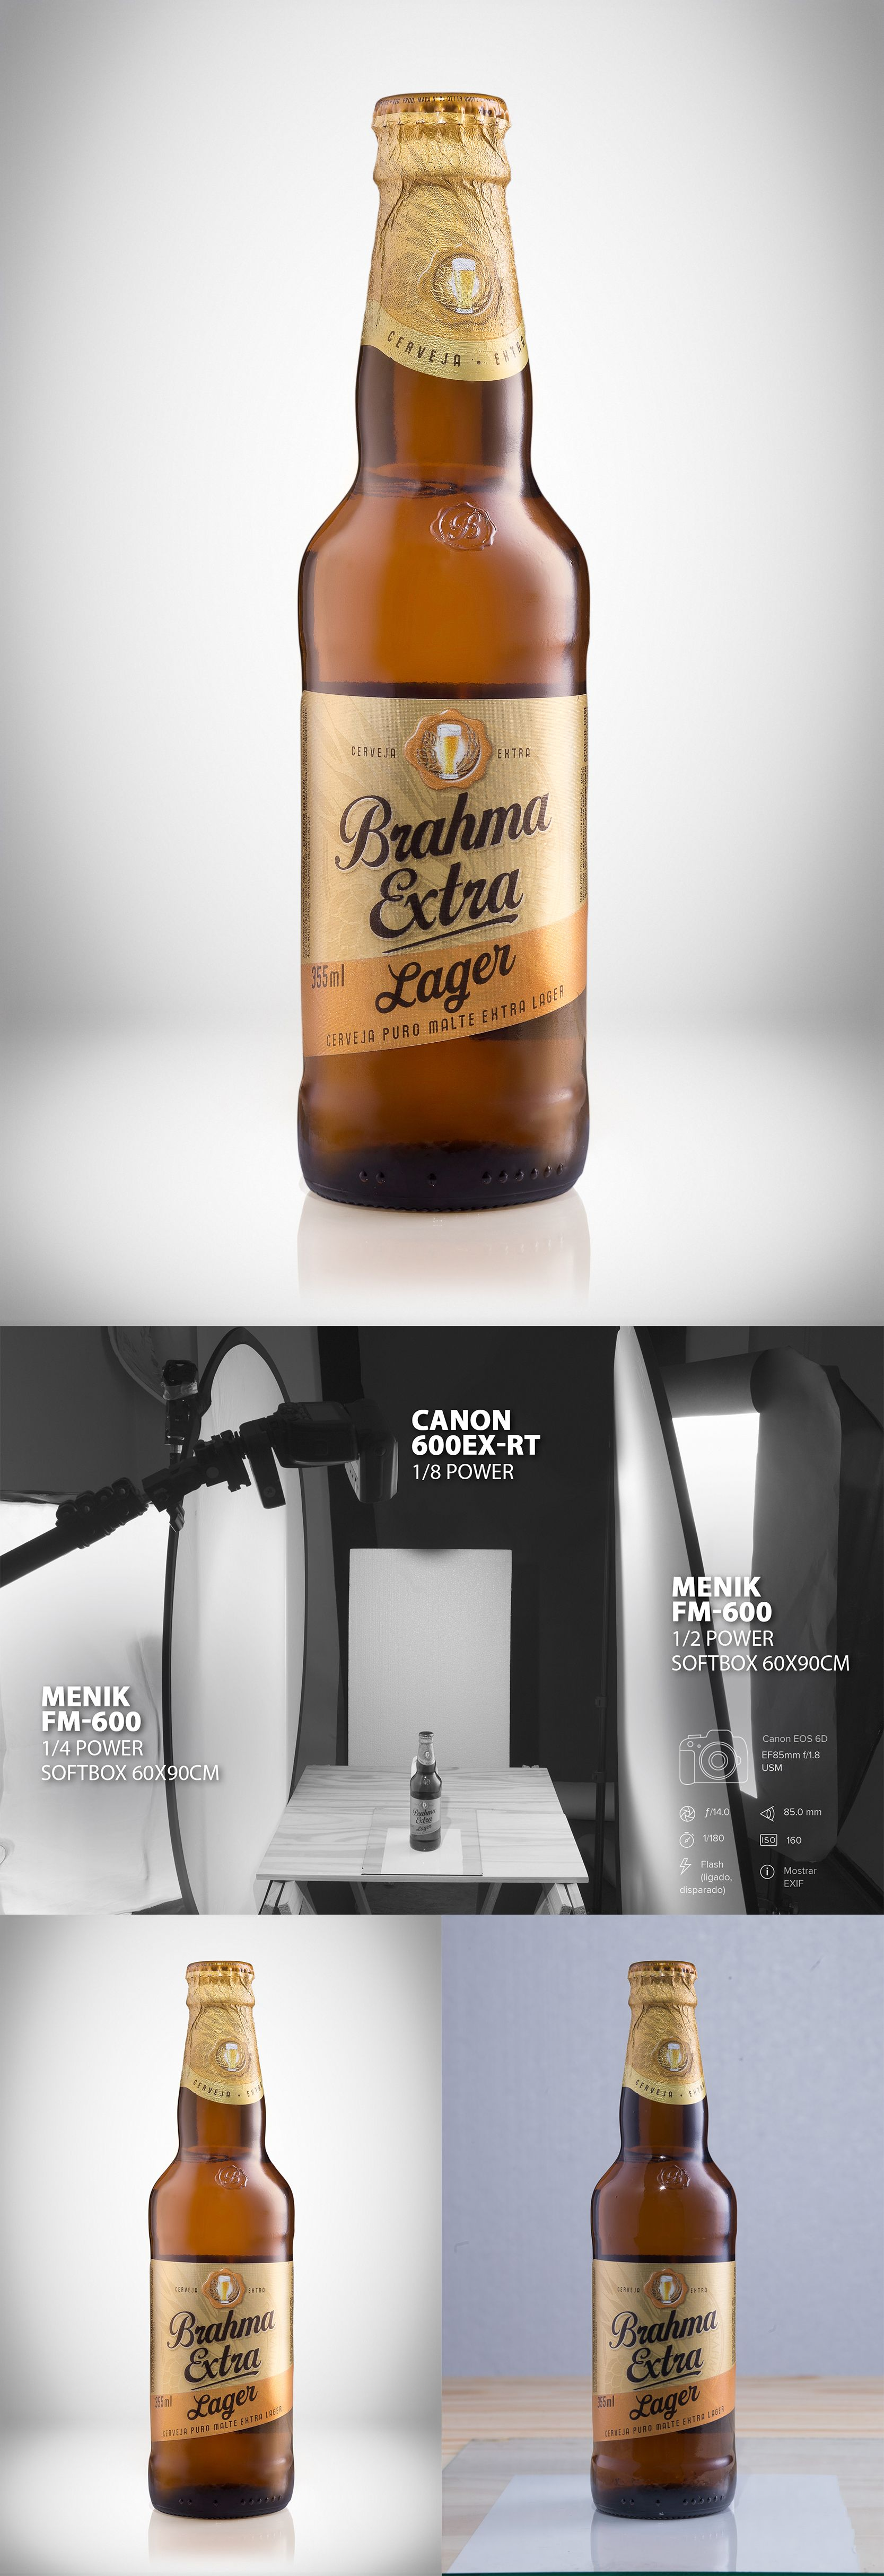 Produktfotografie Beleuchtung 1º Test Beer Setup Light Setup Light Setuplight Still Product